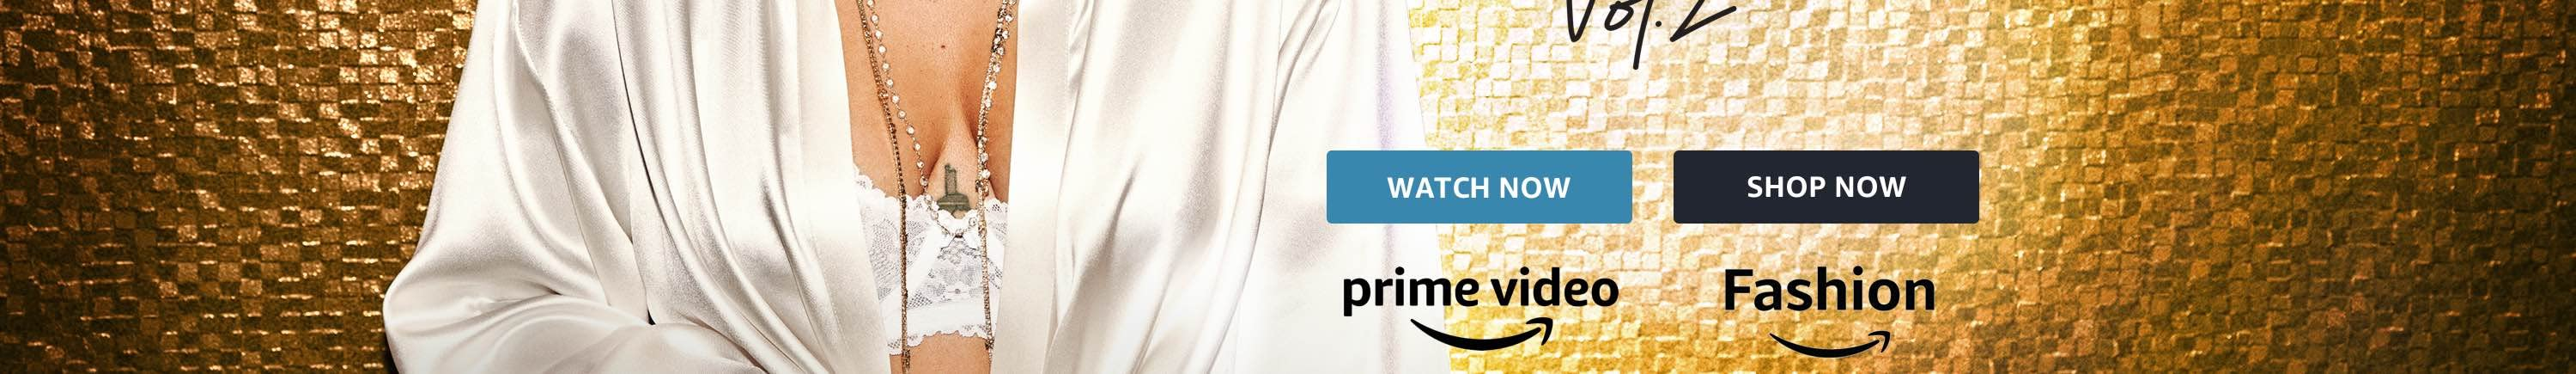 Watch Now on Prime Video